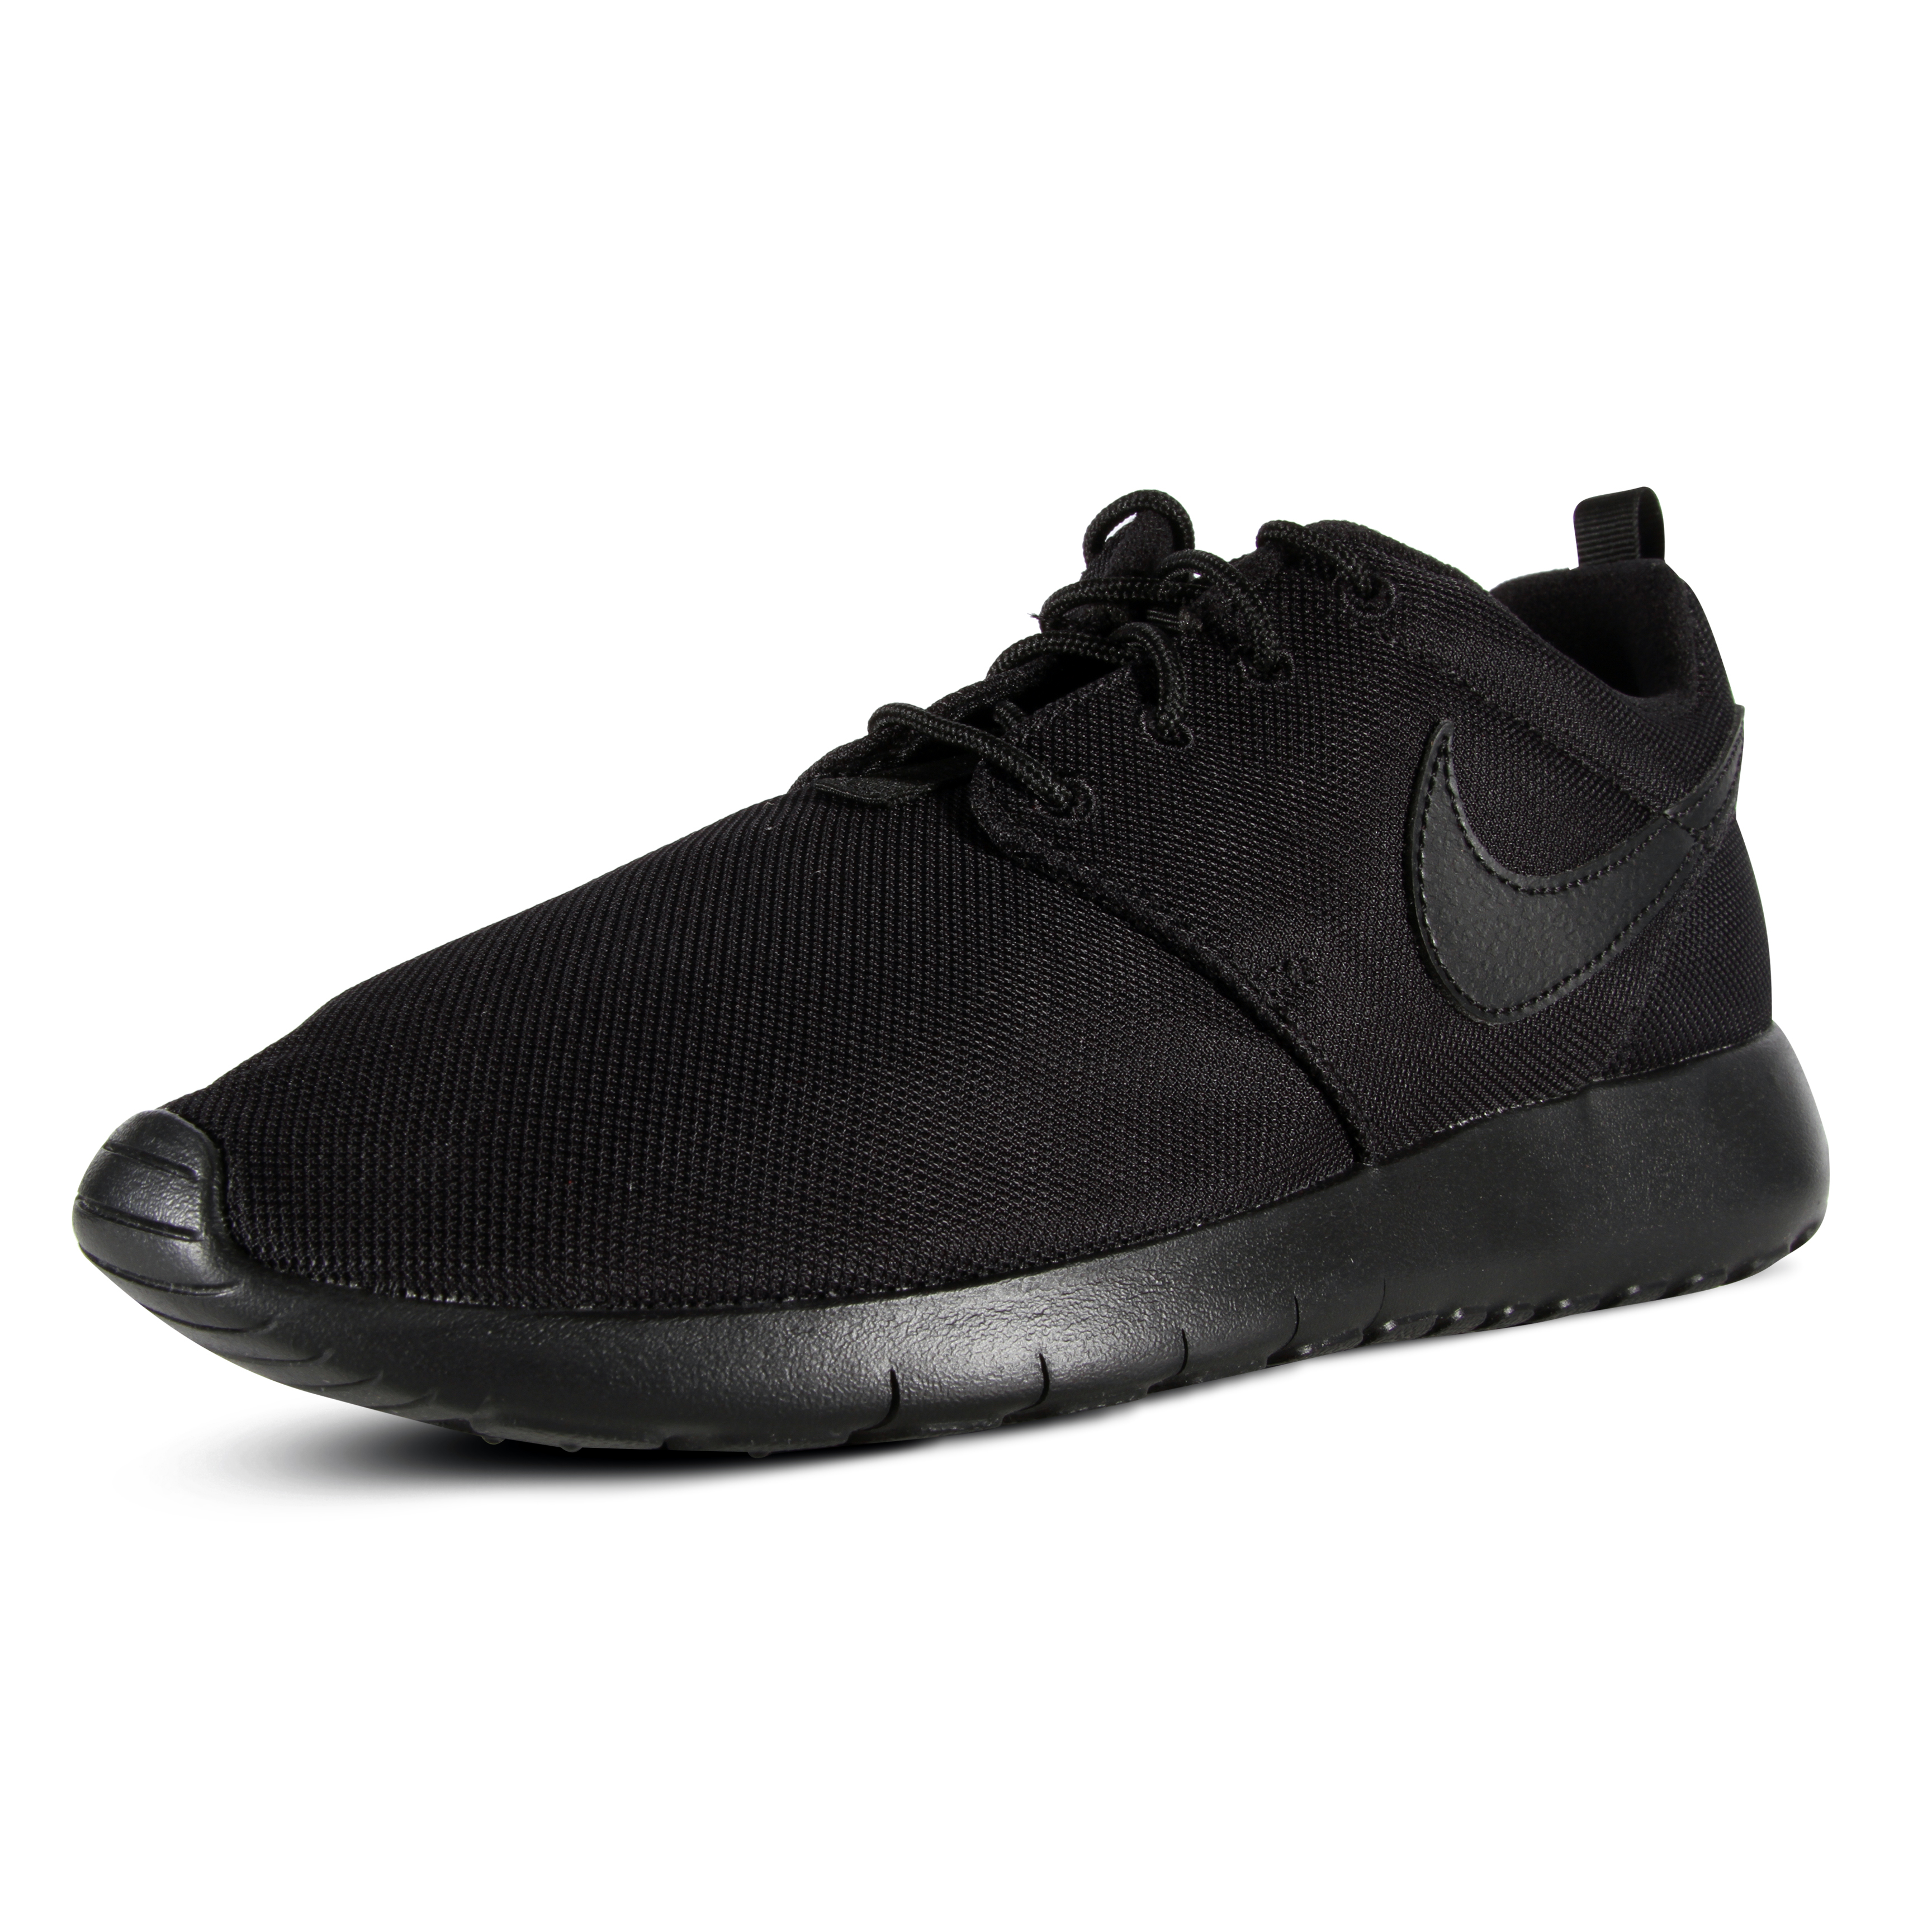 dc6c9fad44f6 Details about Boys  Nike Roshe One (GS) Grade School (Big Kids) Running  Shoes 599728-031